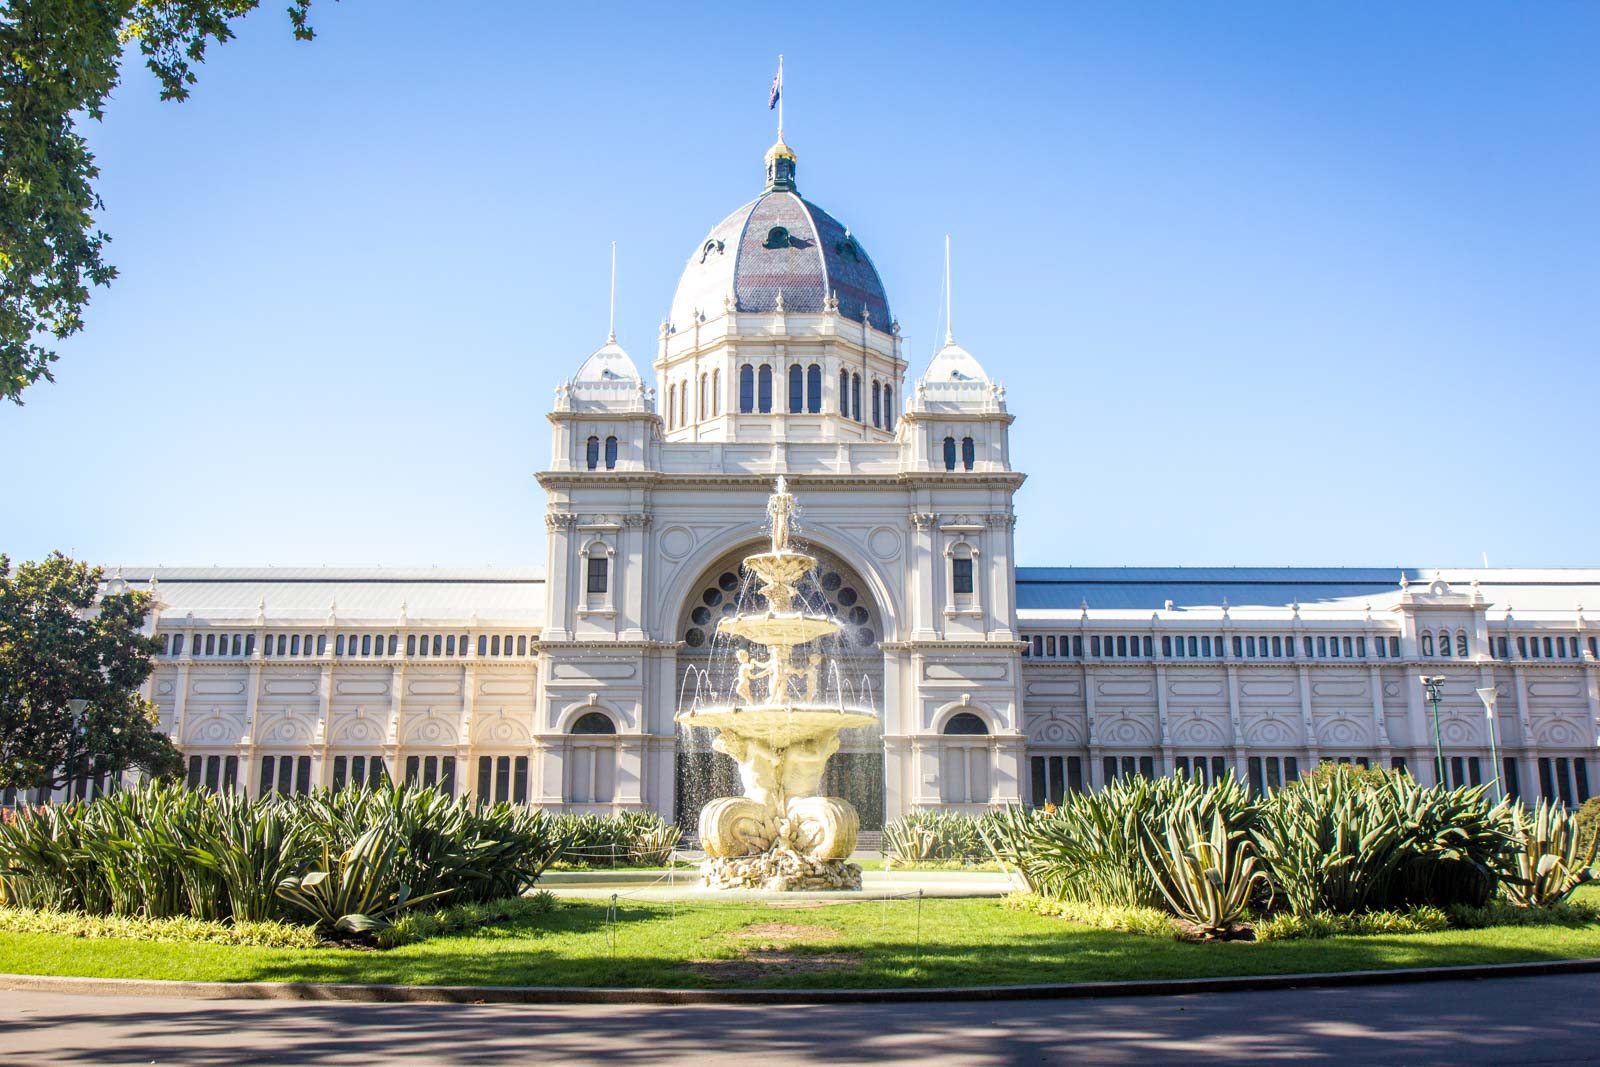 Royal Exhibition Building, Melbourne, Australia